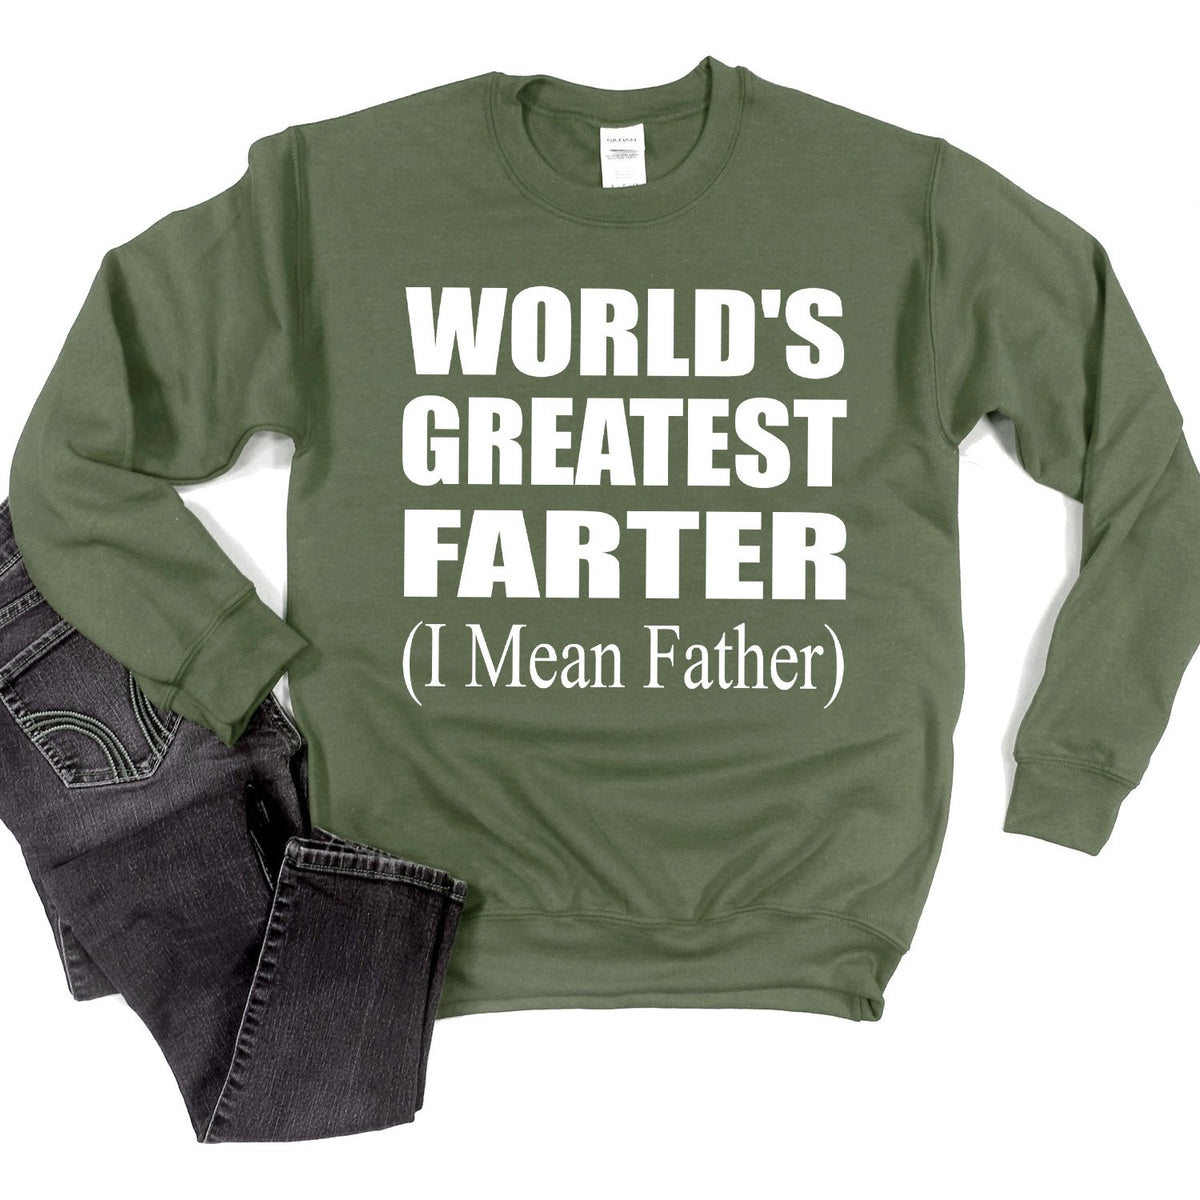 World's Greatest Farter (I Mean Father) - Long Sleeve Heavy Crewneck Sweatshirt